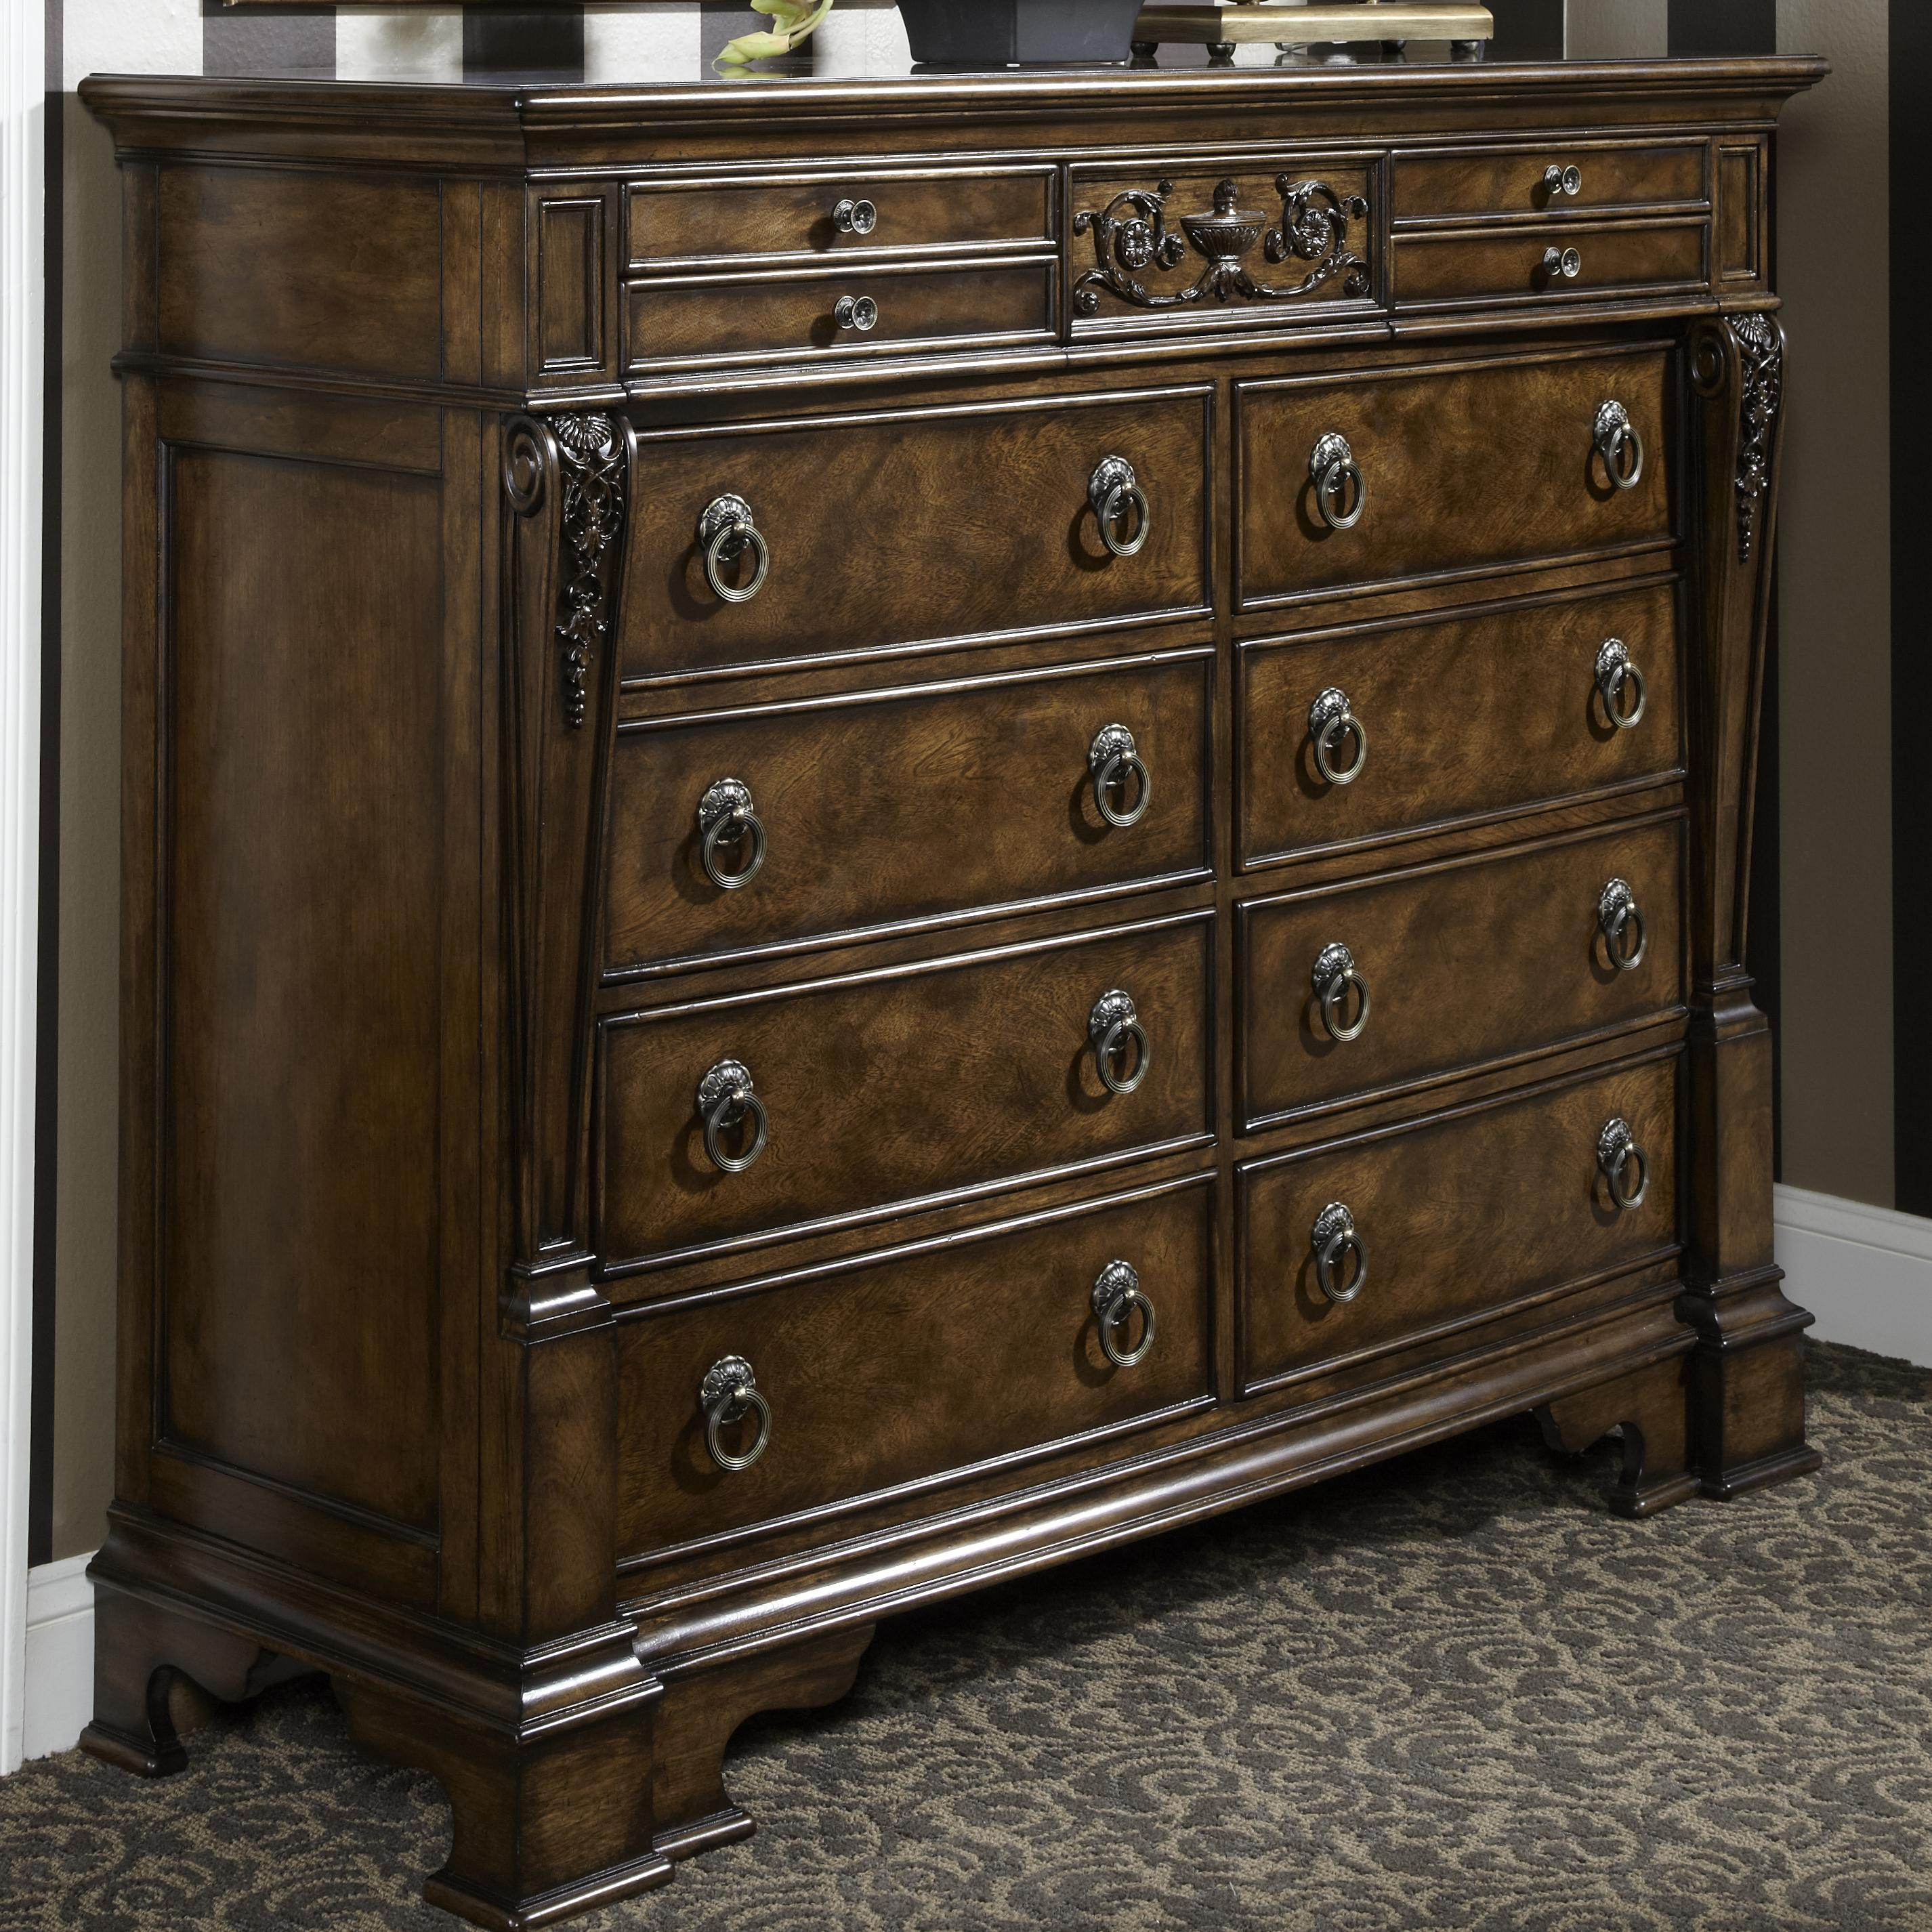 Charmant Michael Harrison Collection Belvedere Traditional Dressing Chest With Extra  Storage Jewelery Trays And Brass Colored Hardware | Sprintz Furniture |  Dressers ...